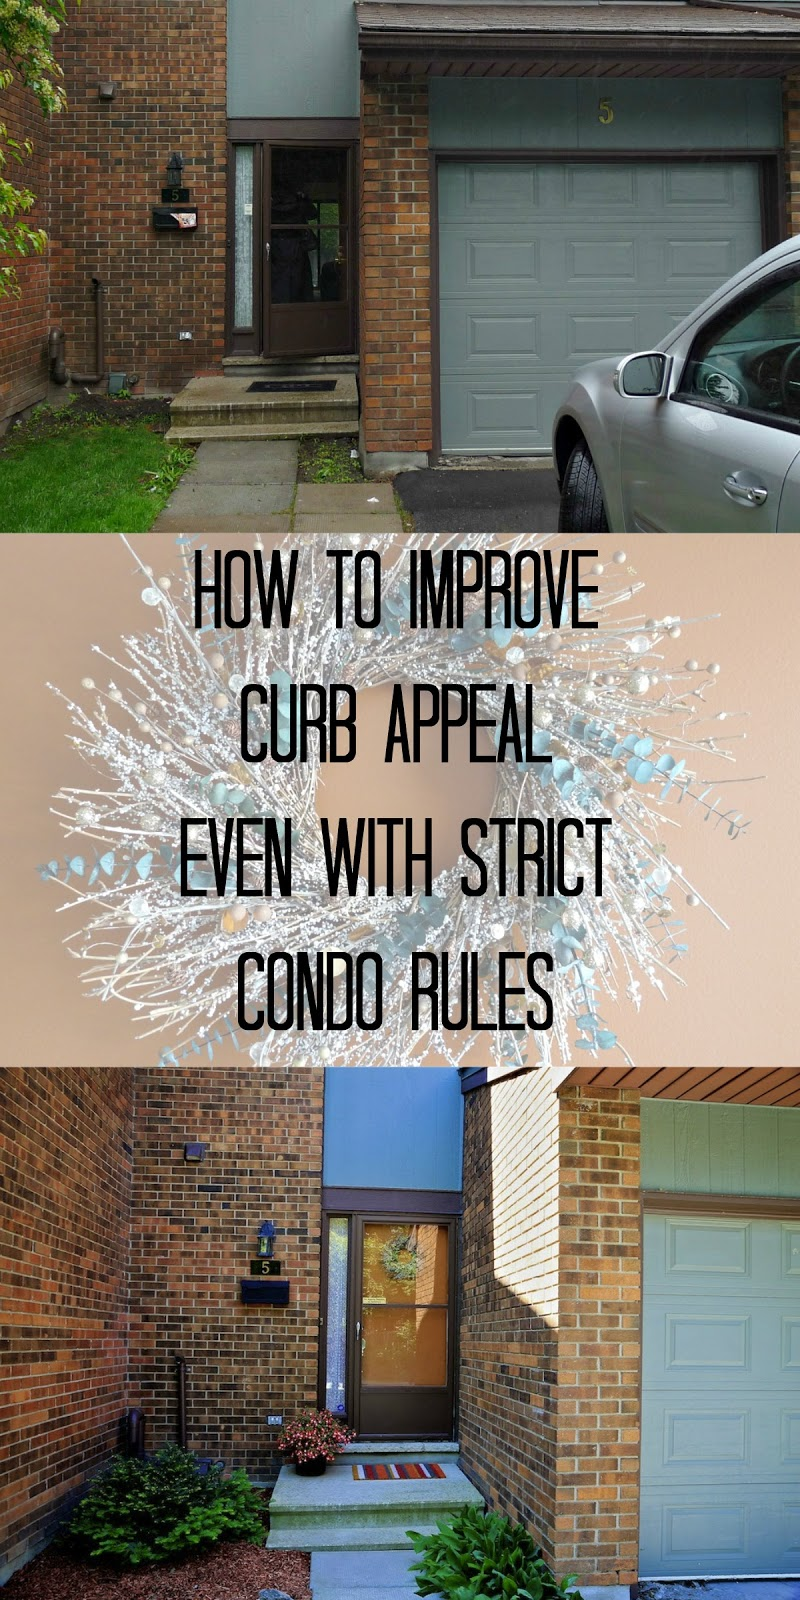 How to improve curb appeal, even with strict condo rules & a small budget